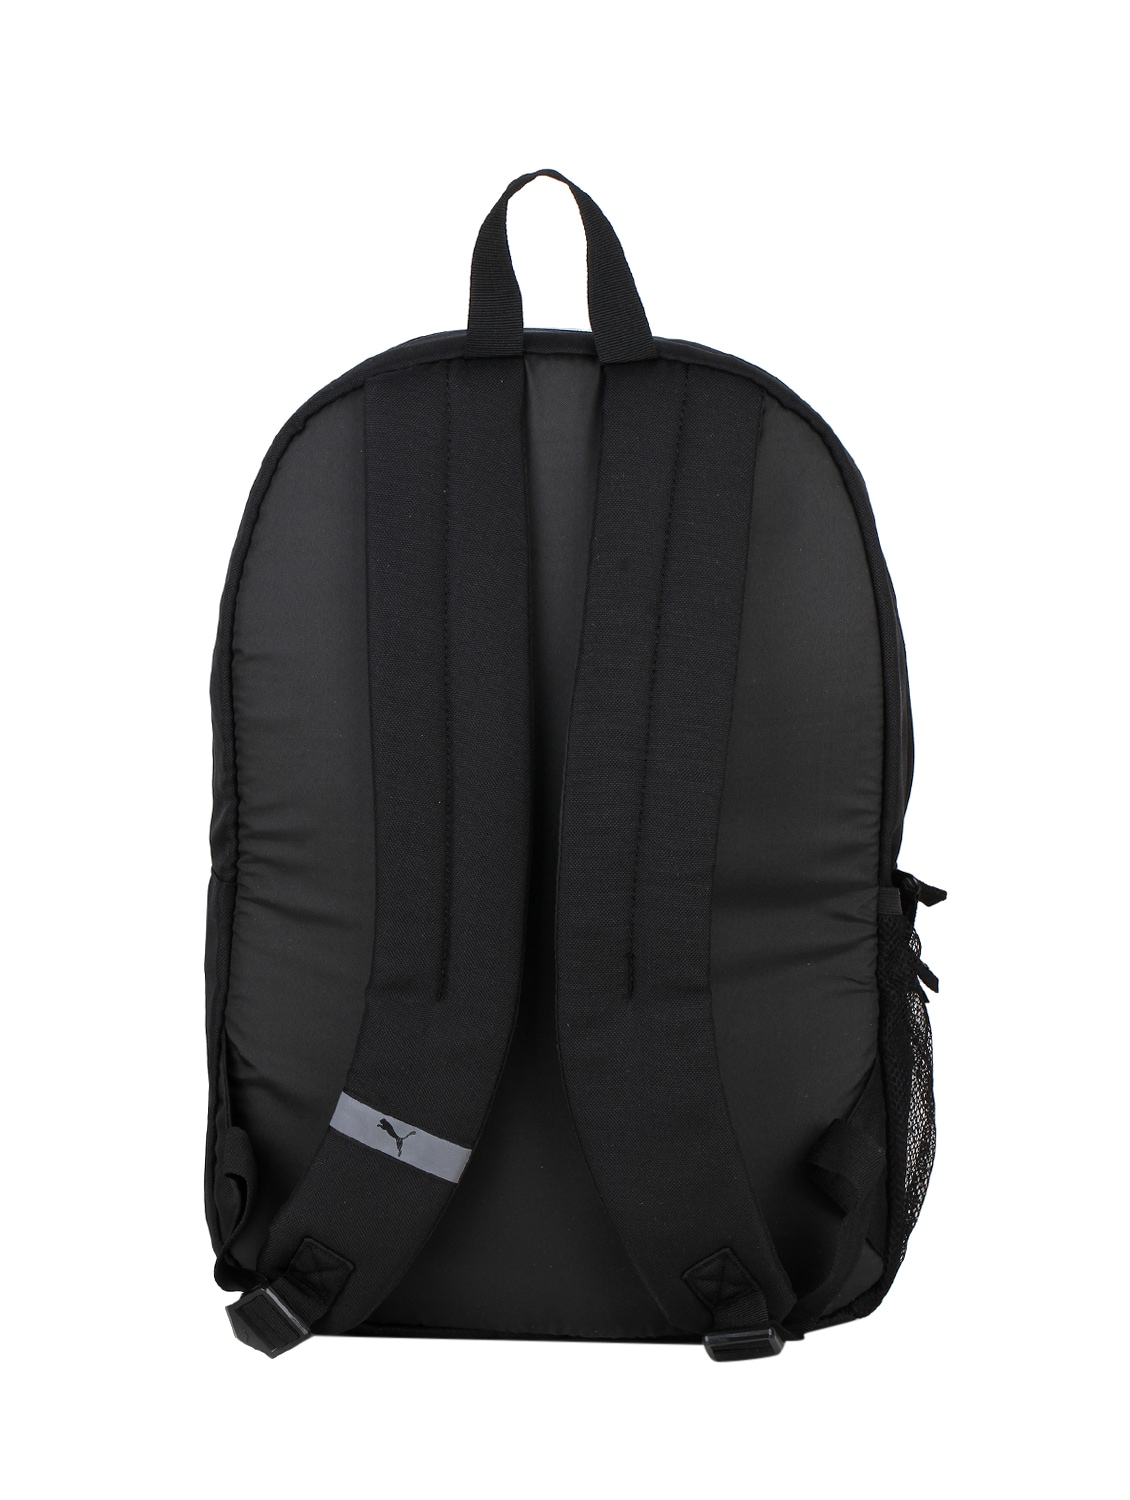 e5d523908991 Buy Black Polyester Backpack by Puma - Online shopping for Backpacks in  India